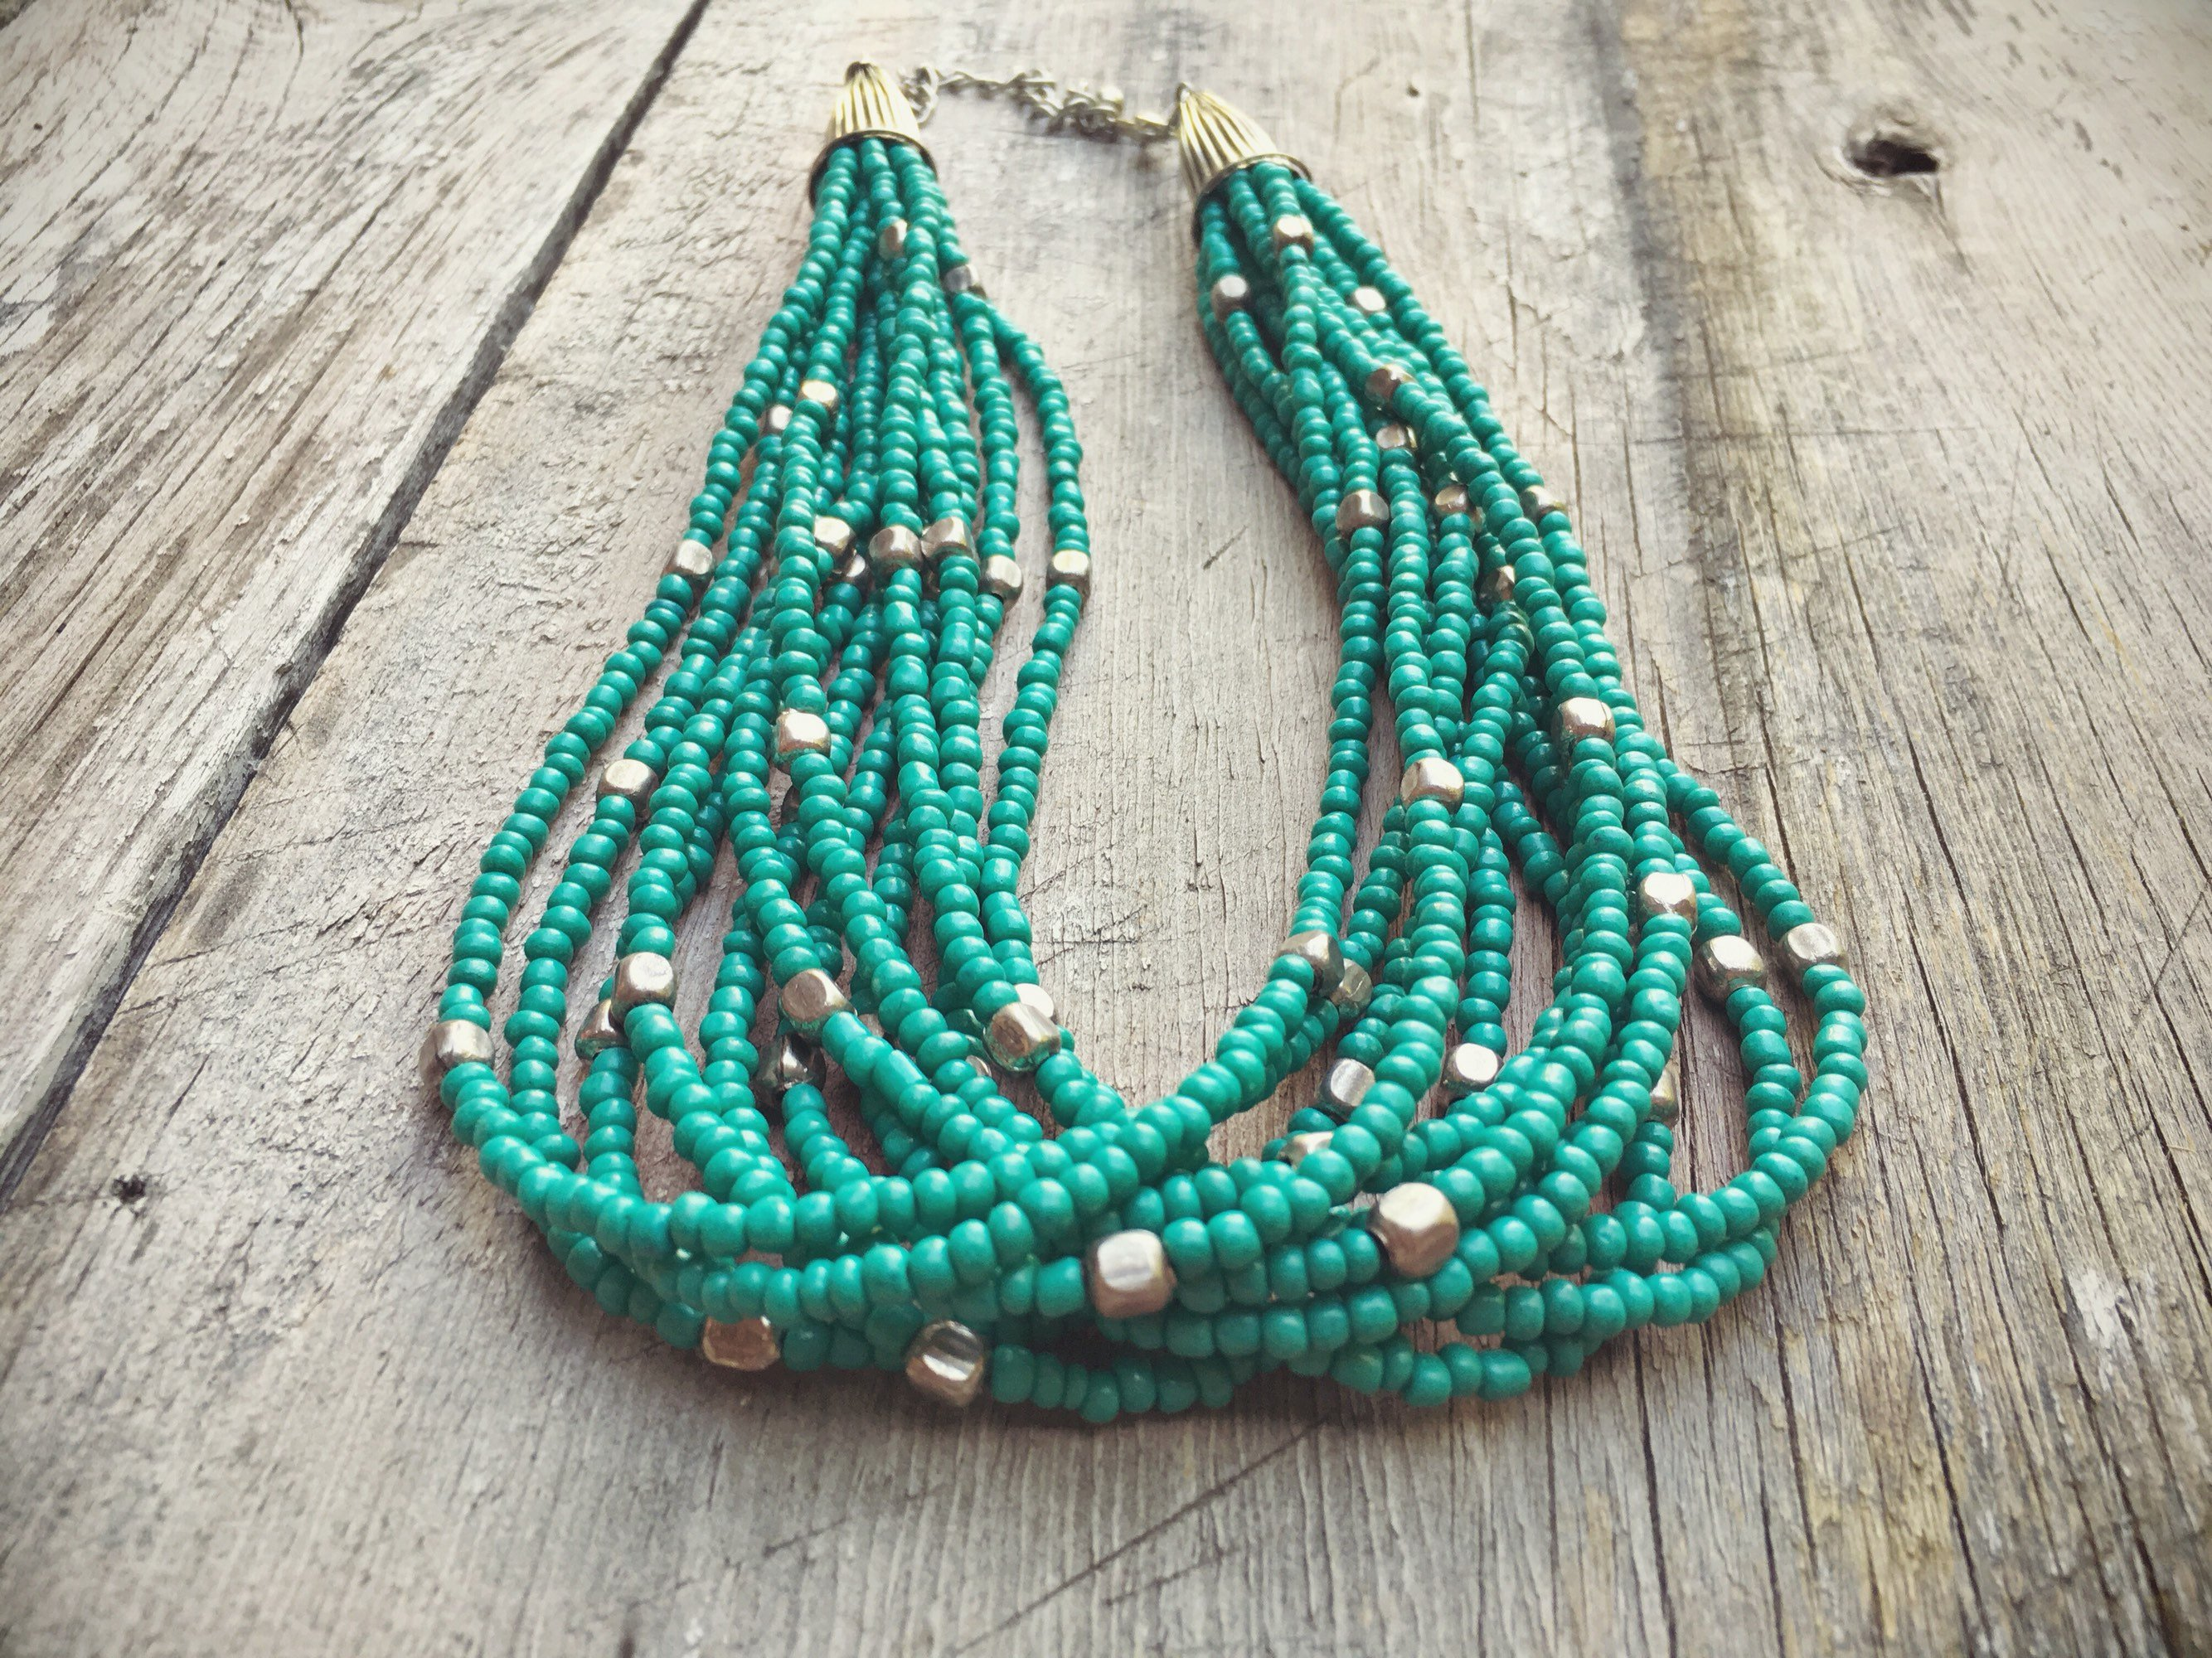 The Turquoise Color Is Considered One Of Best Colors In Fashion Industry It A Mixture Blue And Green Forming Perfect Shade Like That